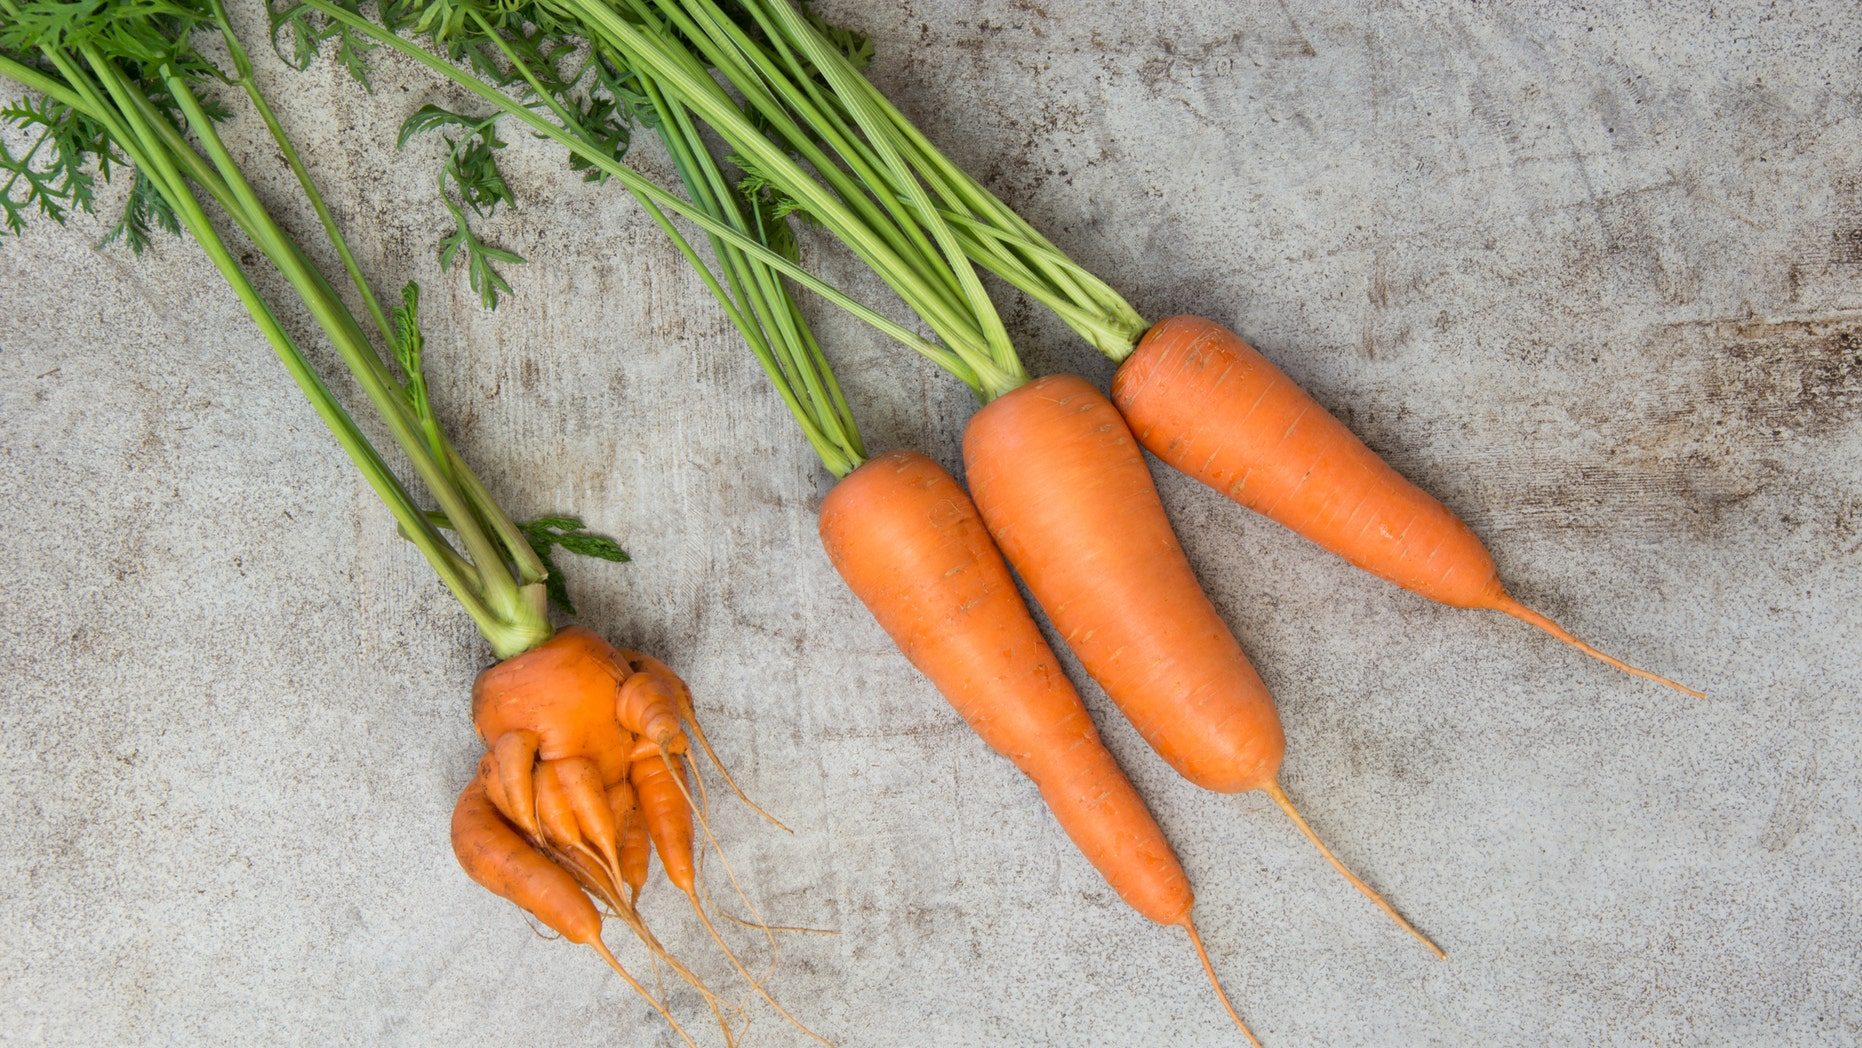 This freaky-looking carrot competence find a home